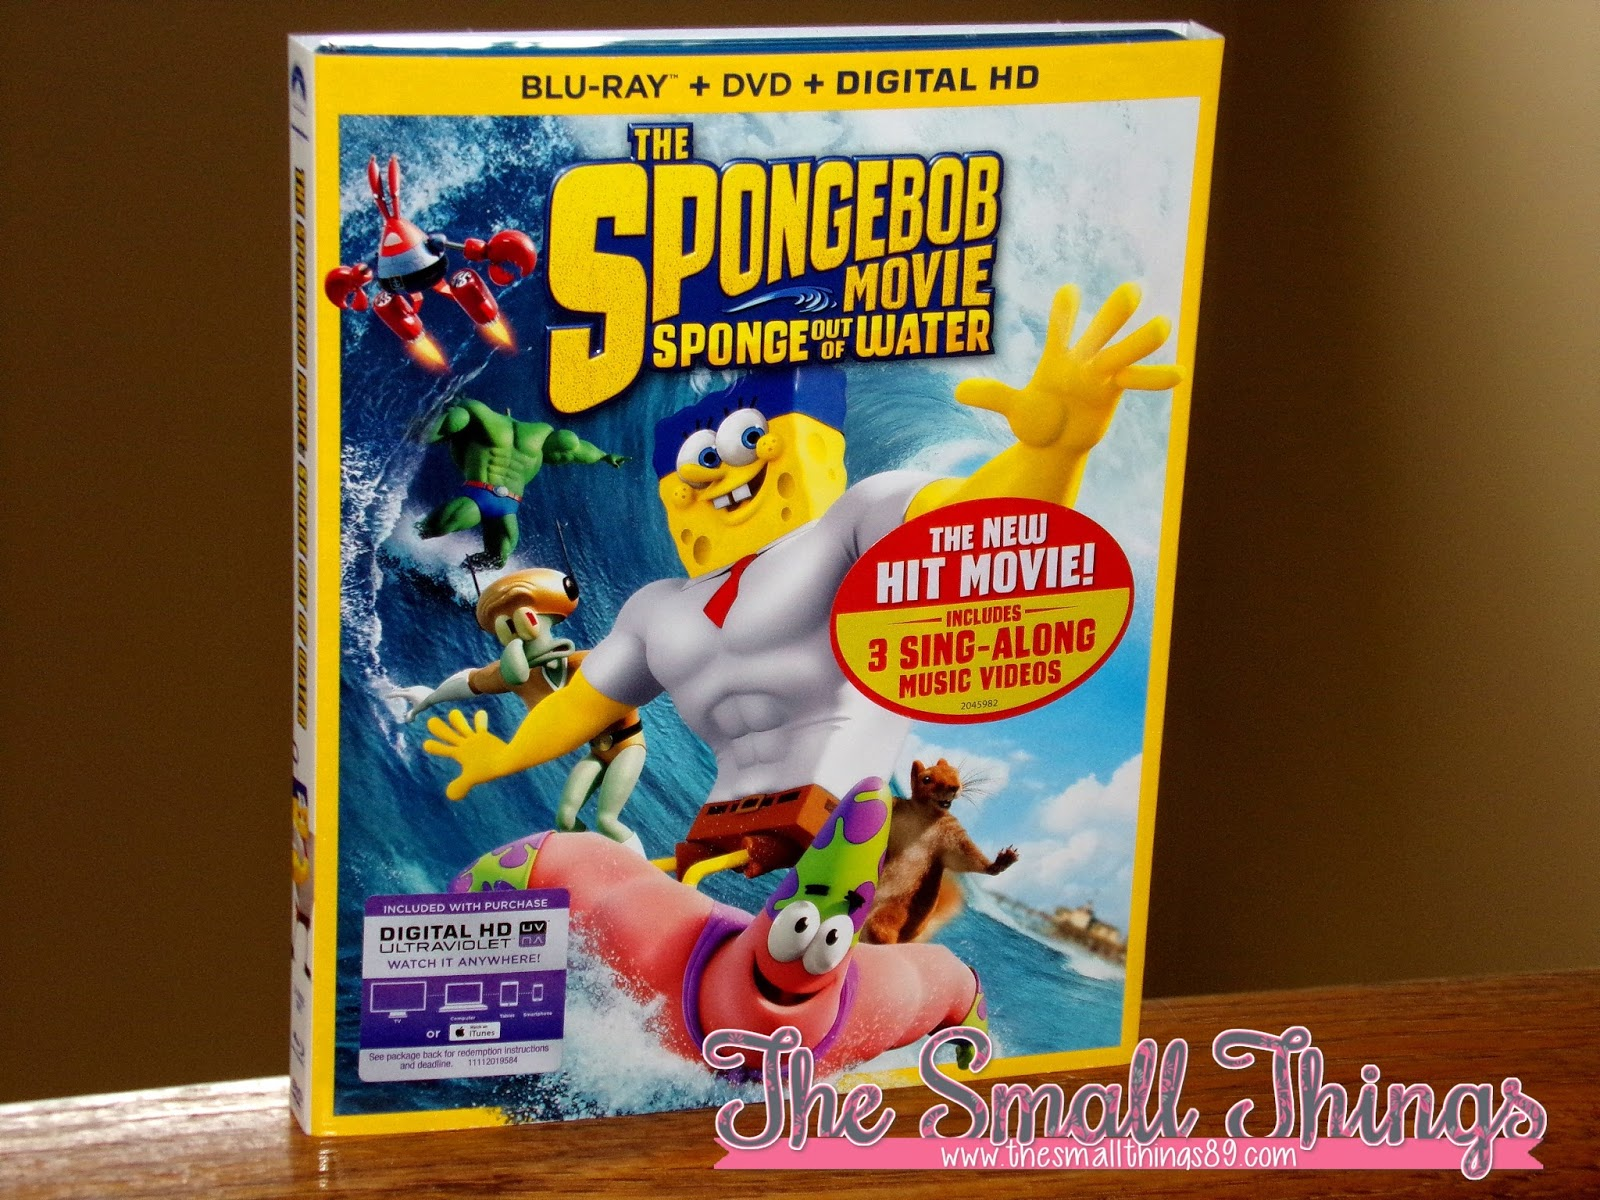 the spongebob movie sponge out of water on blu ray combo pack and